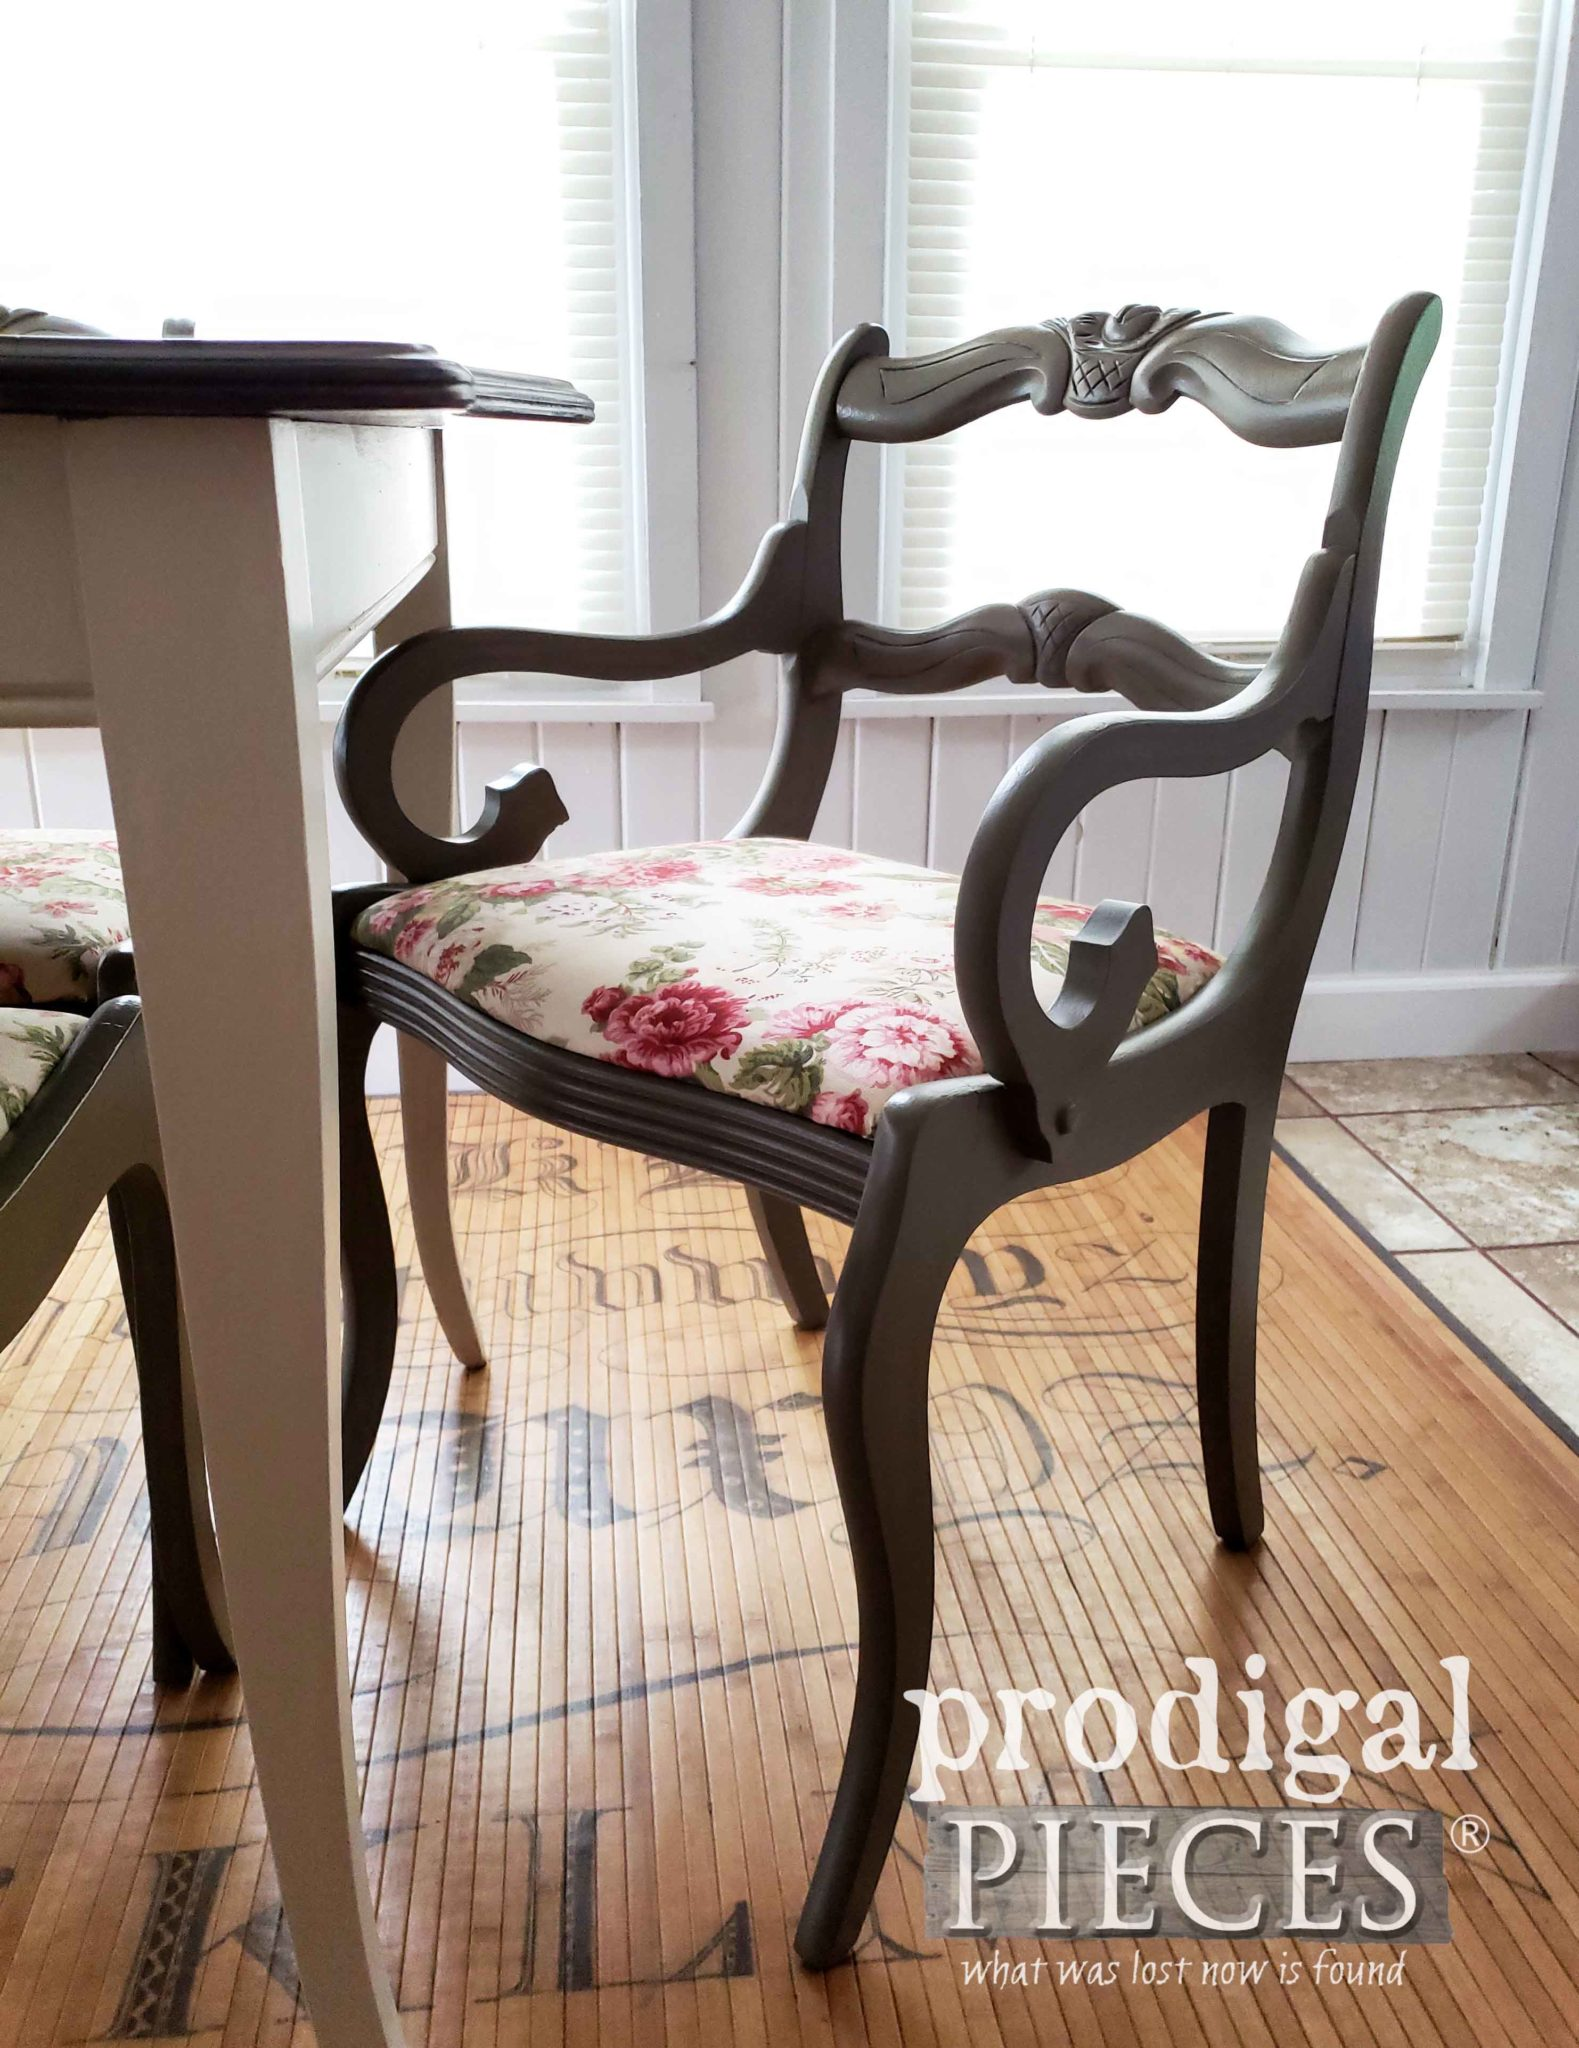 Vintage Captain's Chair with Rose Bud Carved Back by Larissa of Prodigal Pieces | prodigalpieces.com